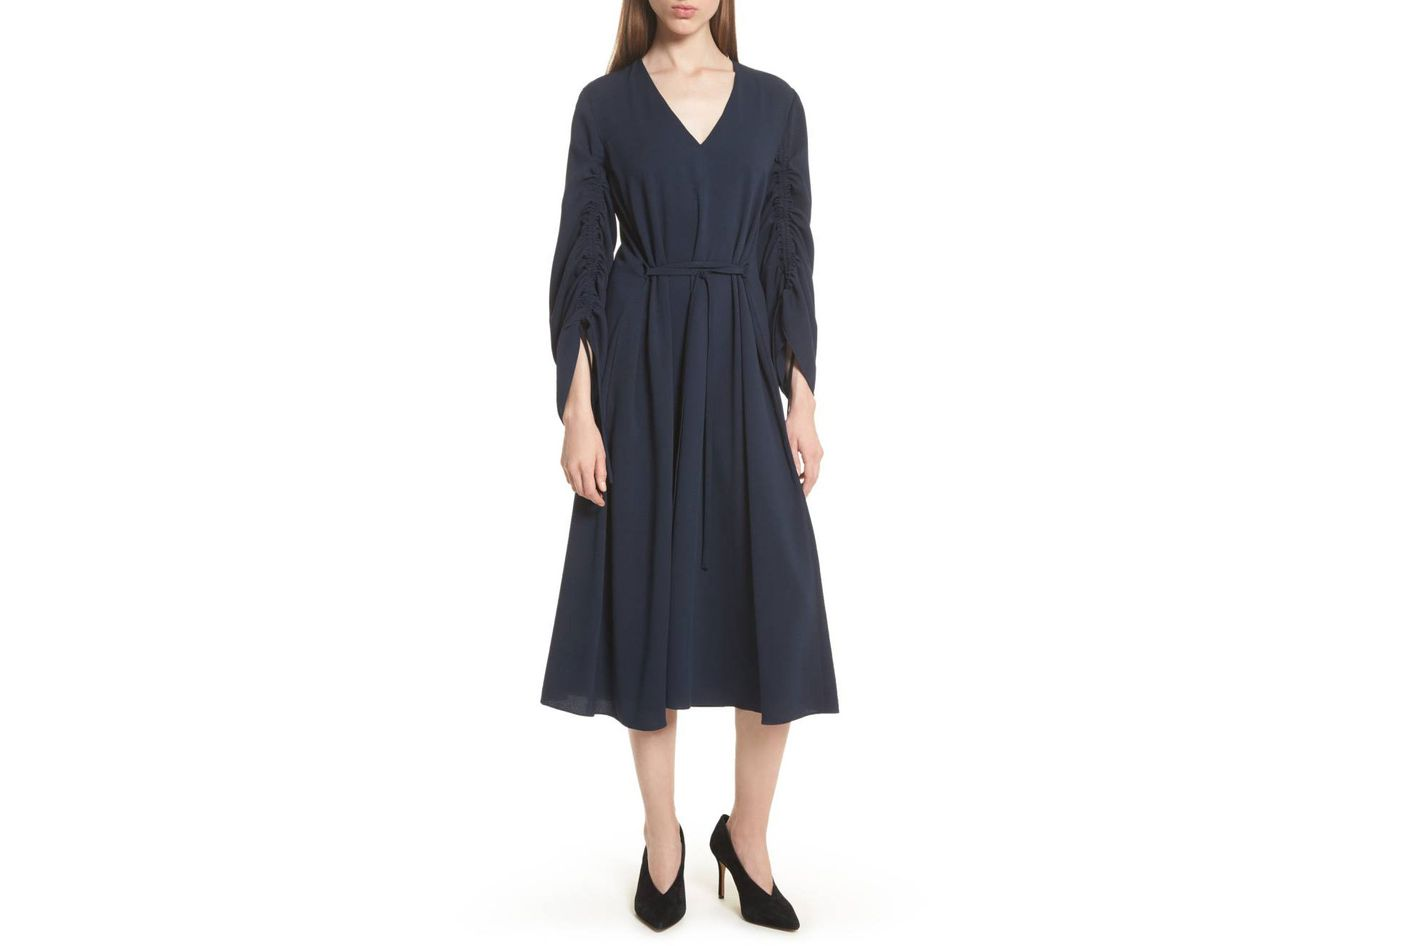 Tibi Convertible Sleeve Midi Dress